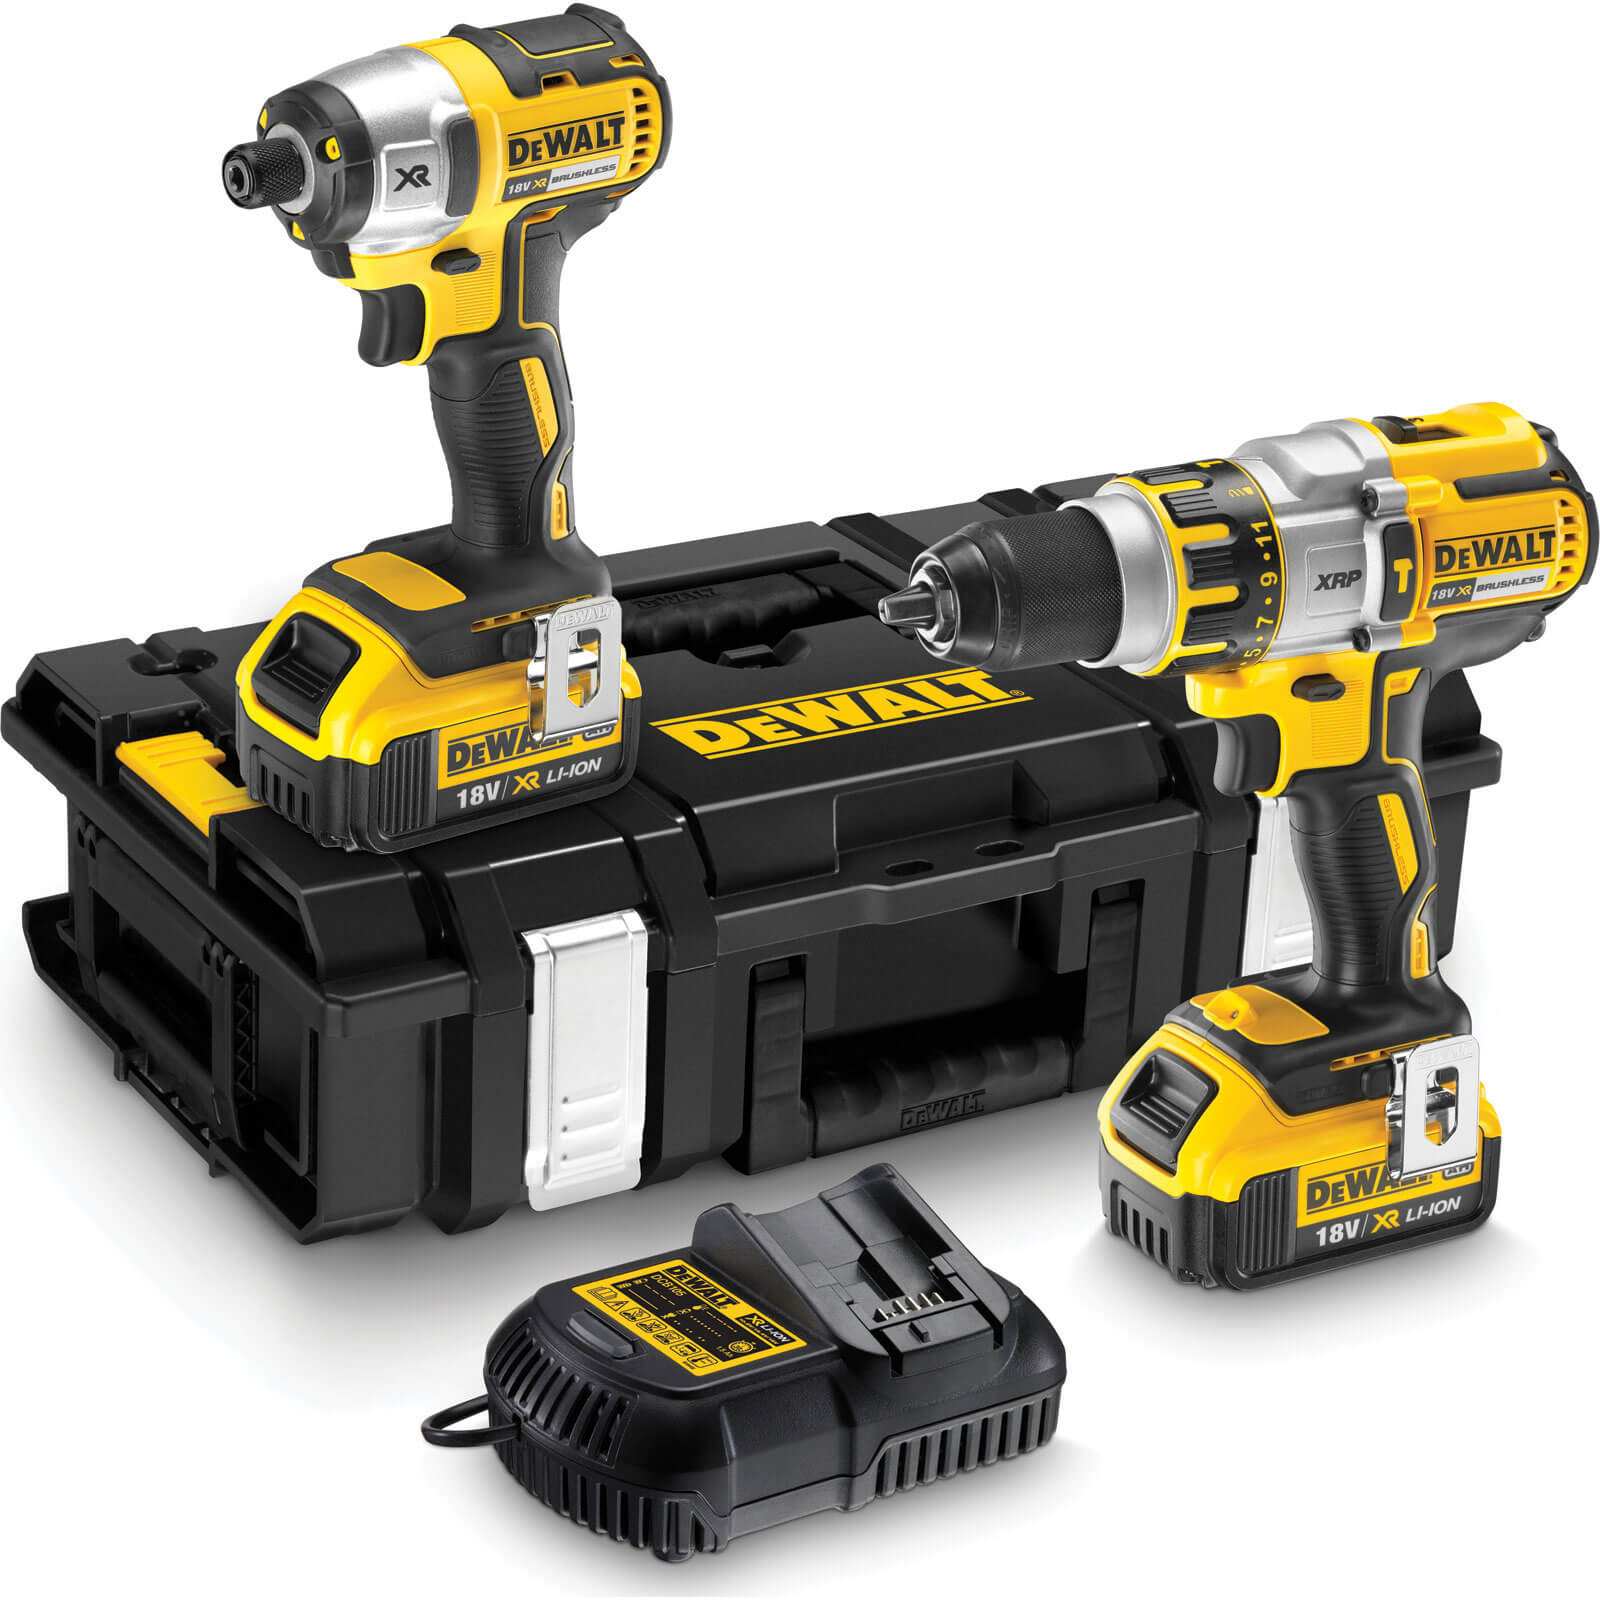 dewalt dck255m2 18v cordless xr brushless combi drill. Black Bedroom Furniture Sets. Home Design Ideas